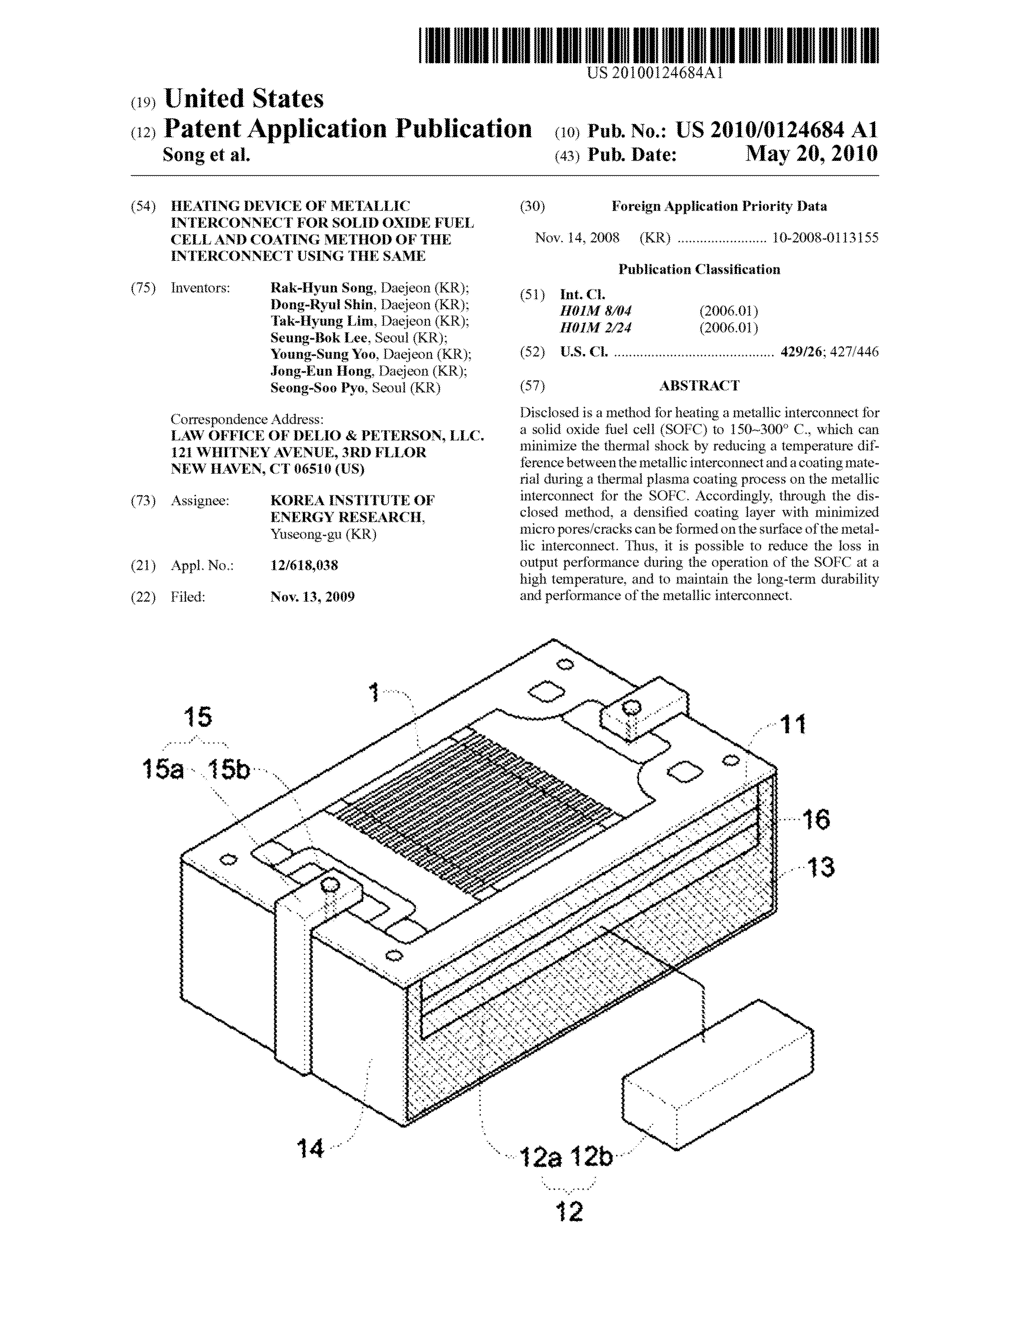 HEATING DEVICE OF METALLIC INTERCONNECT FOR SOLID OXIDE FUEL